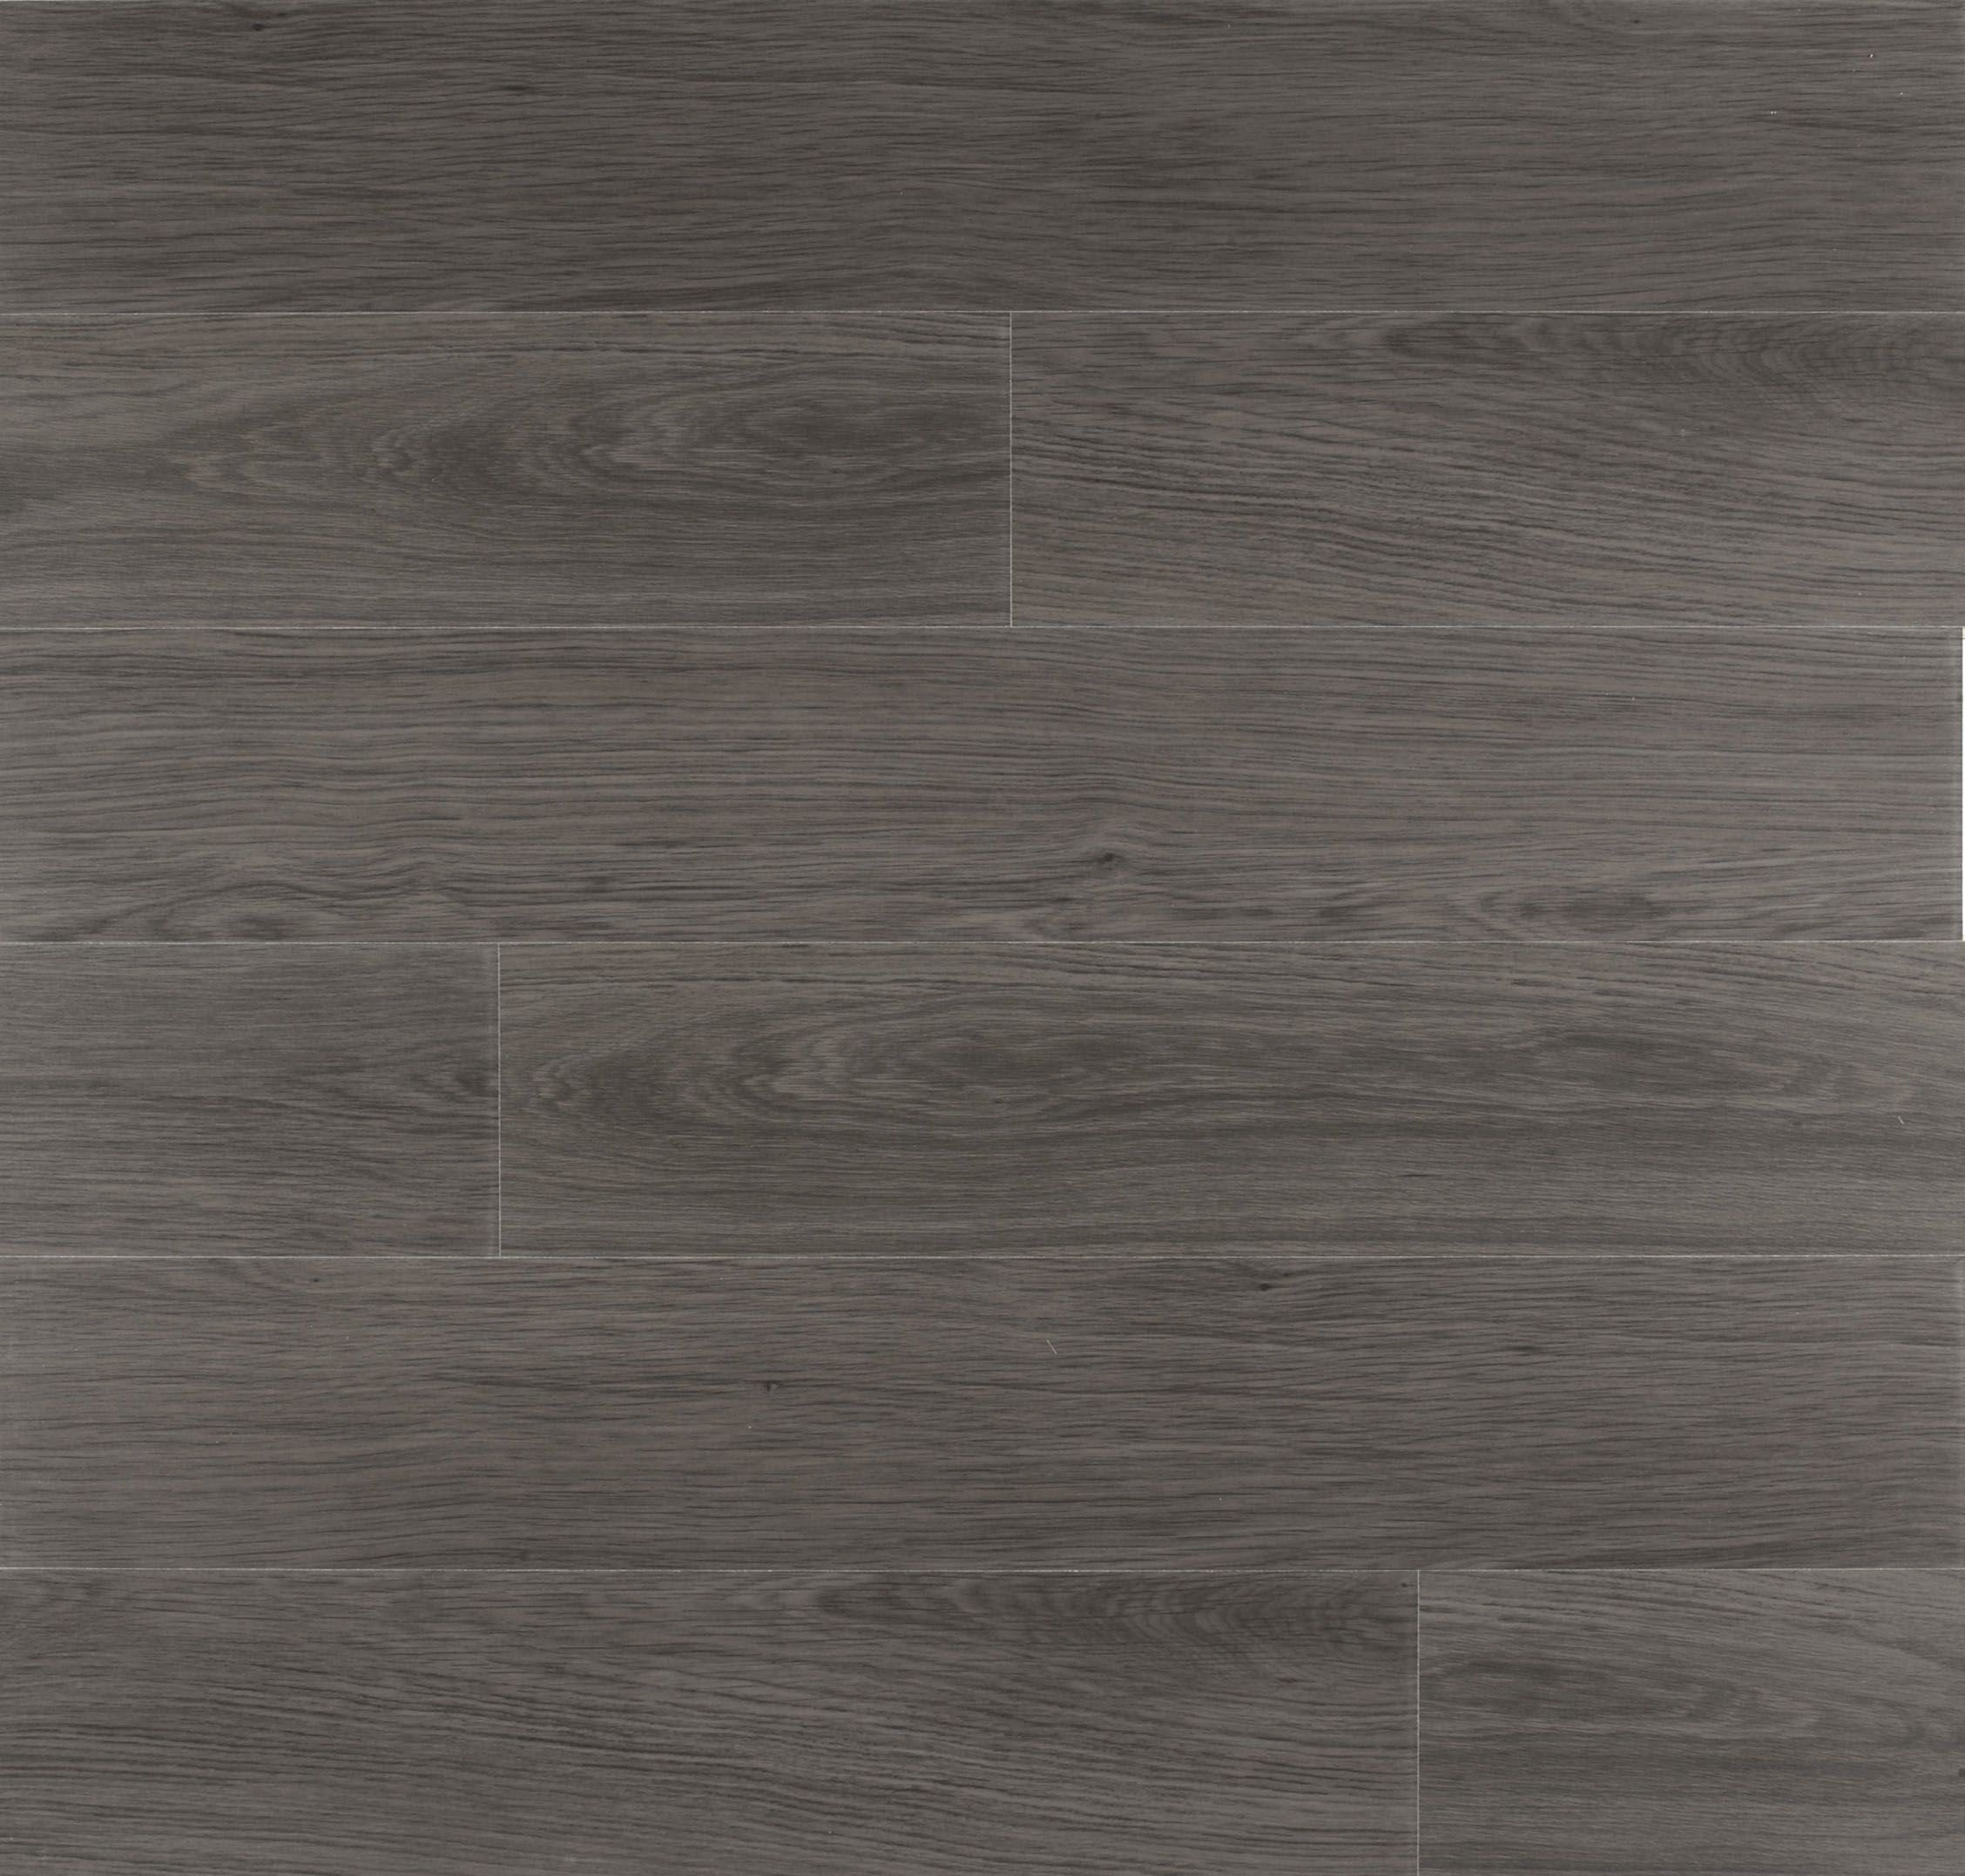 dark wood floors with hint of grey must have these one